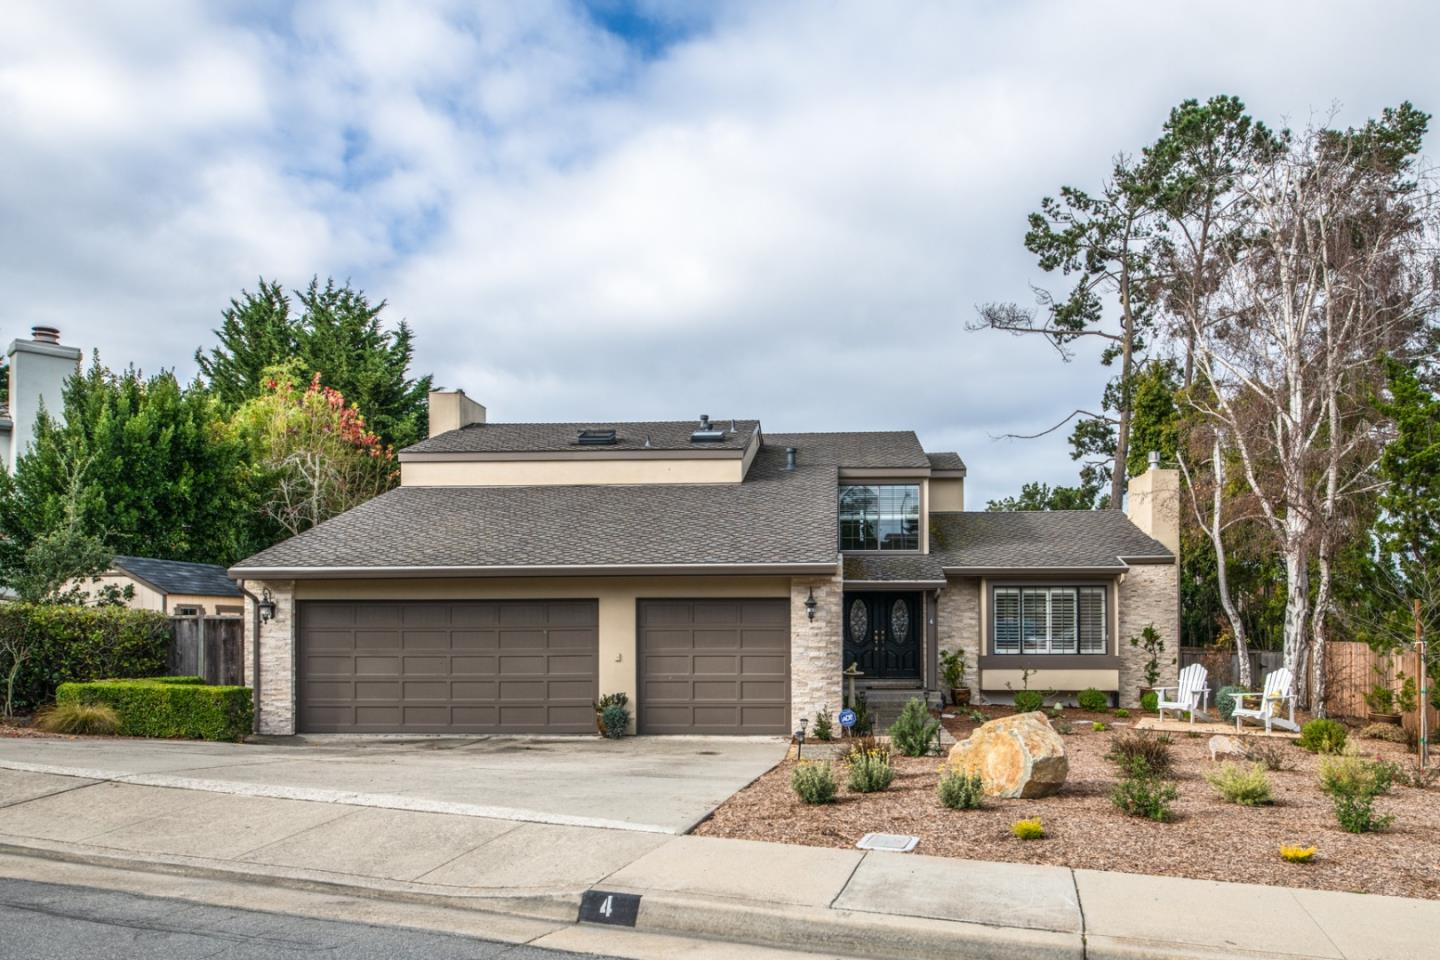 Photo of 4 Black Tail LN, MONTEREY, CA 93940